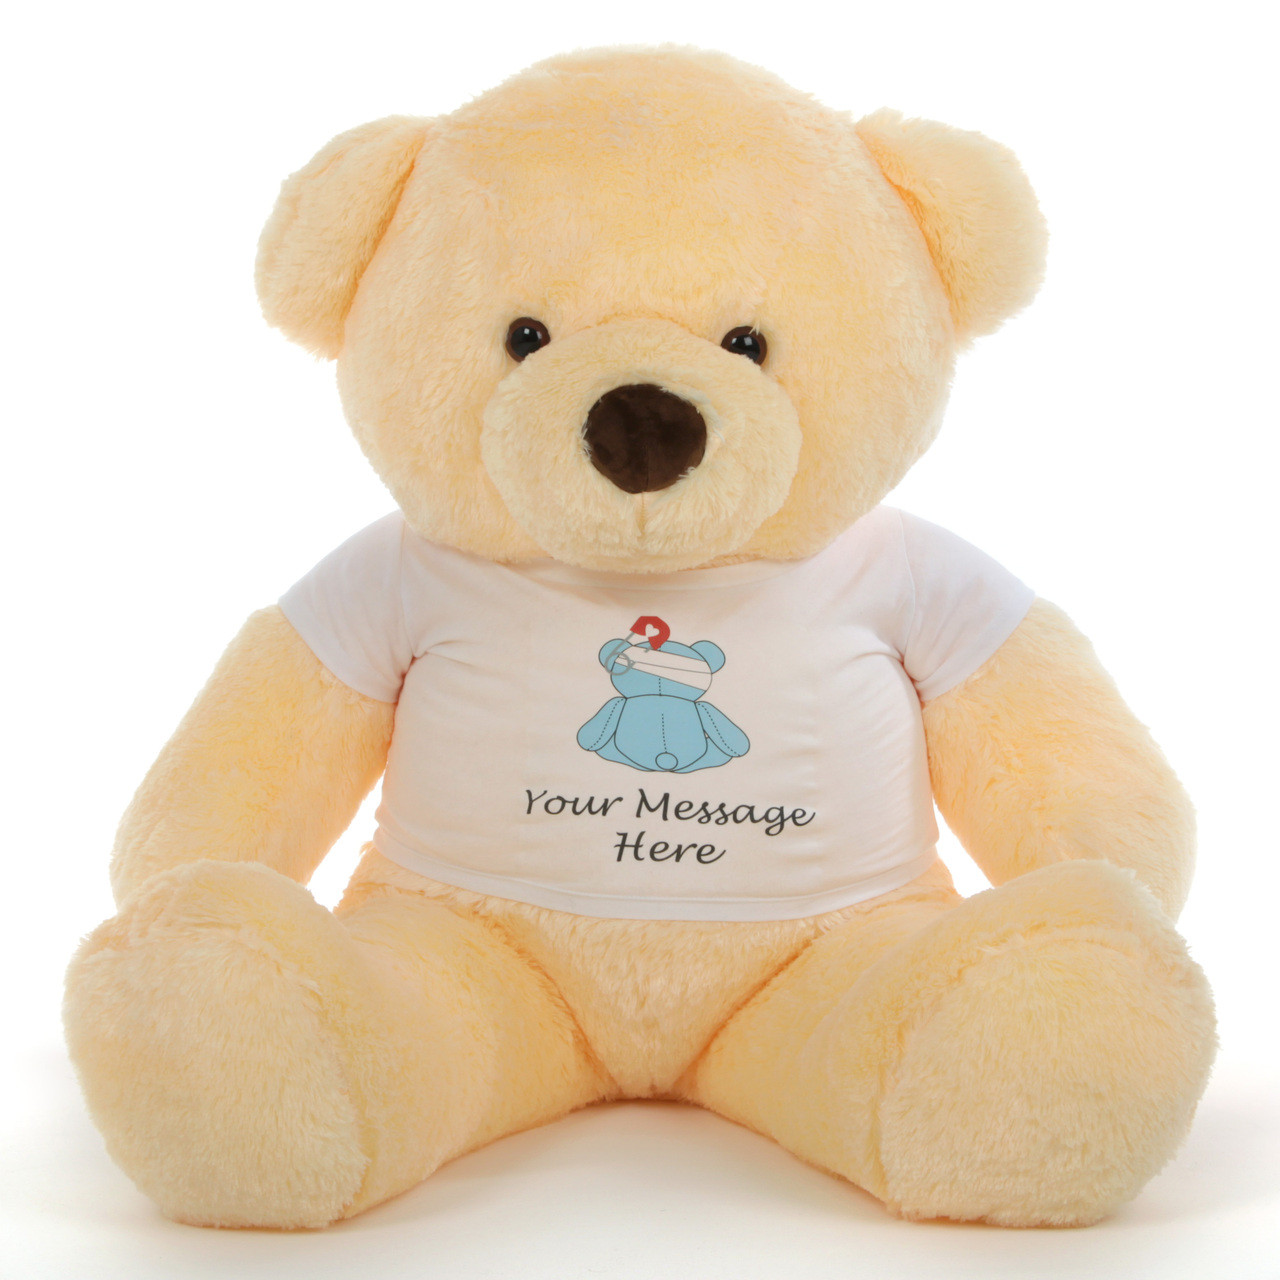 Adorable Personalized Feel Better Bears From Giant Teddy